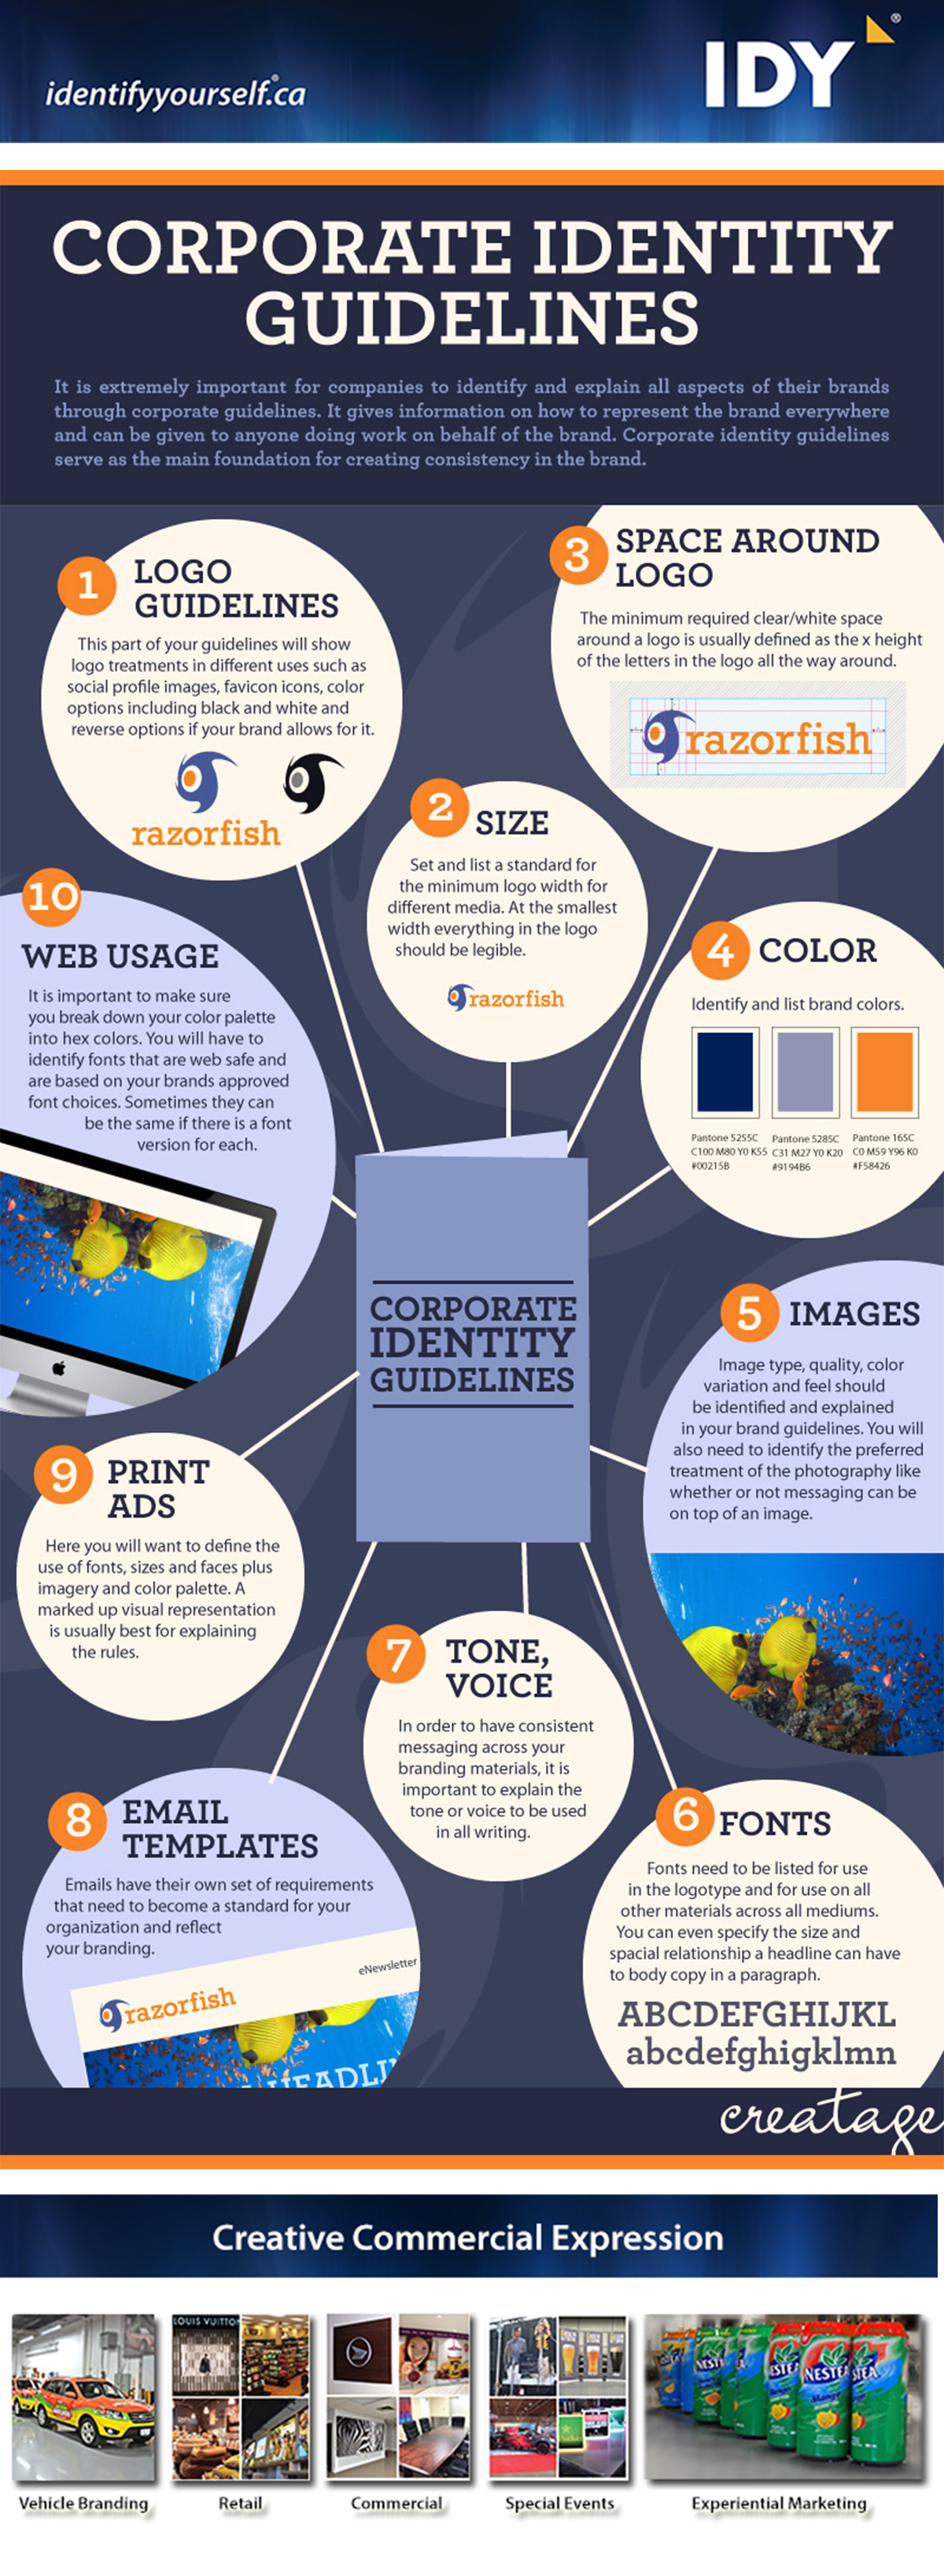 Corporate-Identity-Guidelines